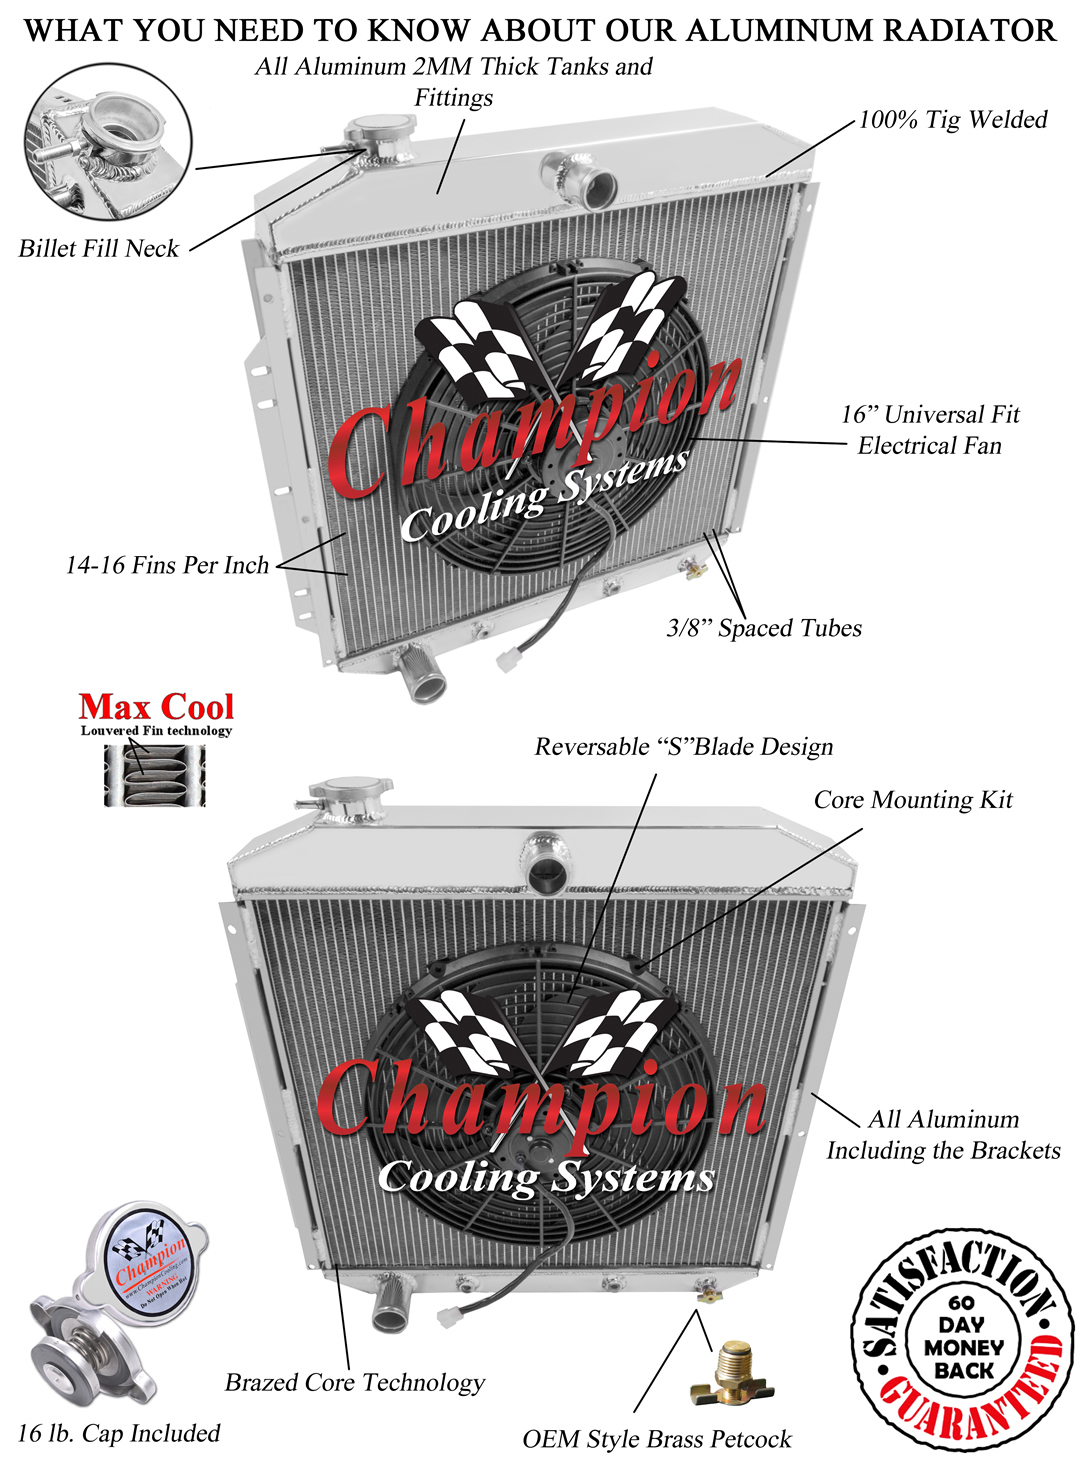 https://www.championcooling.com/photos/Photos%20White/With%20Fans/Combos/5356/5356_fans_white_Diagram_Champion.jpg